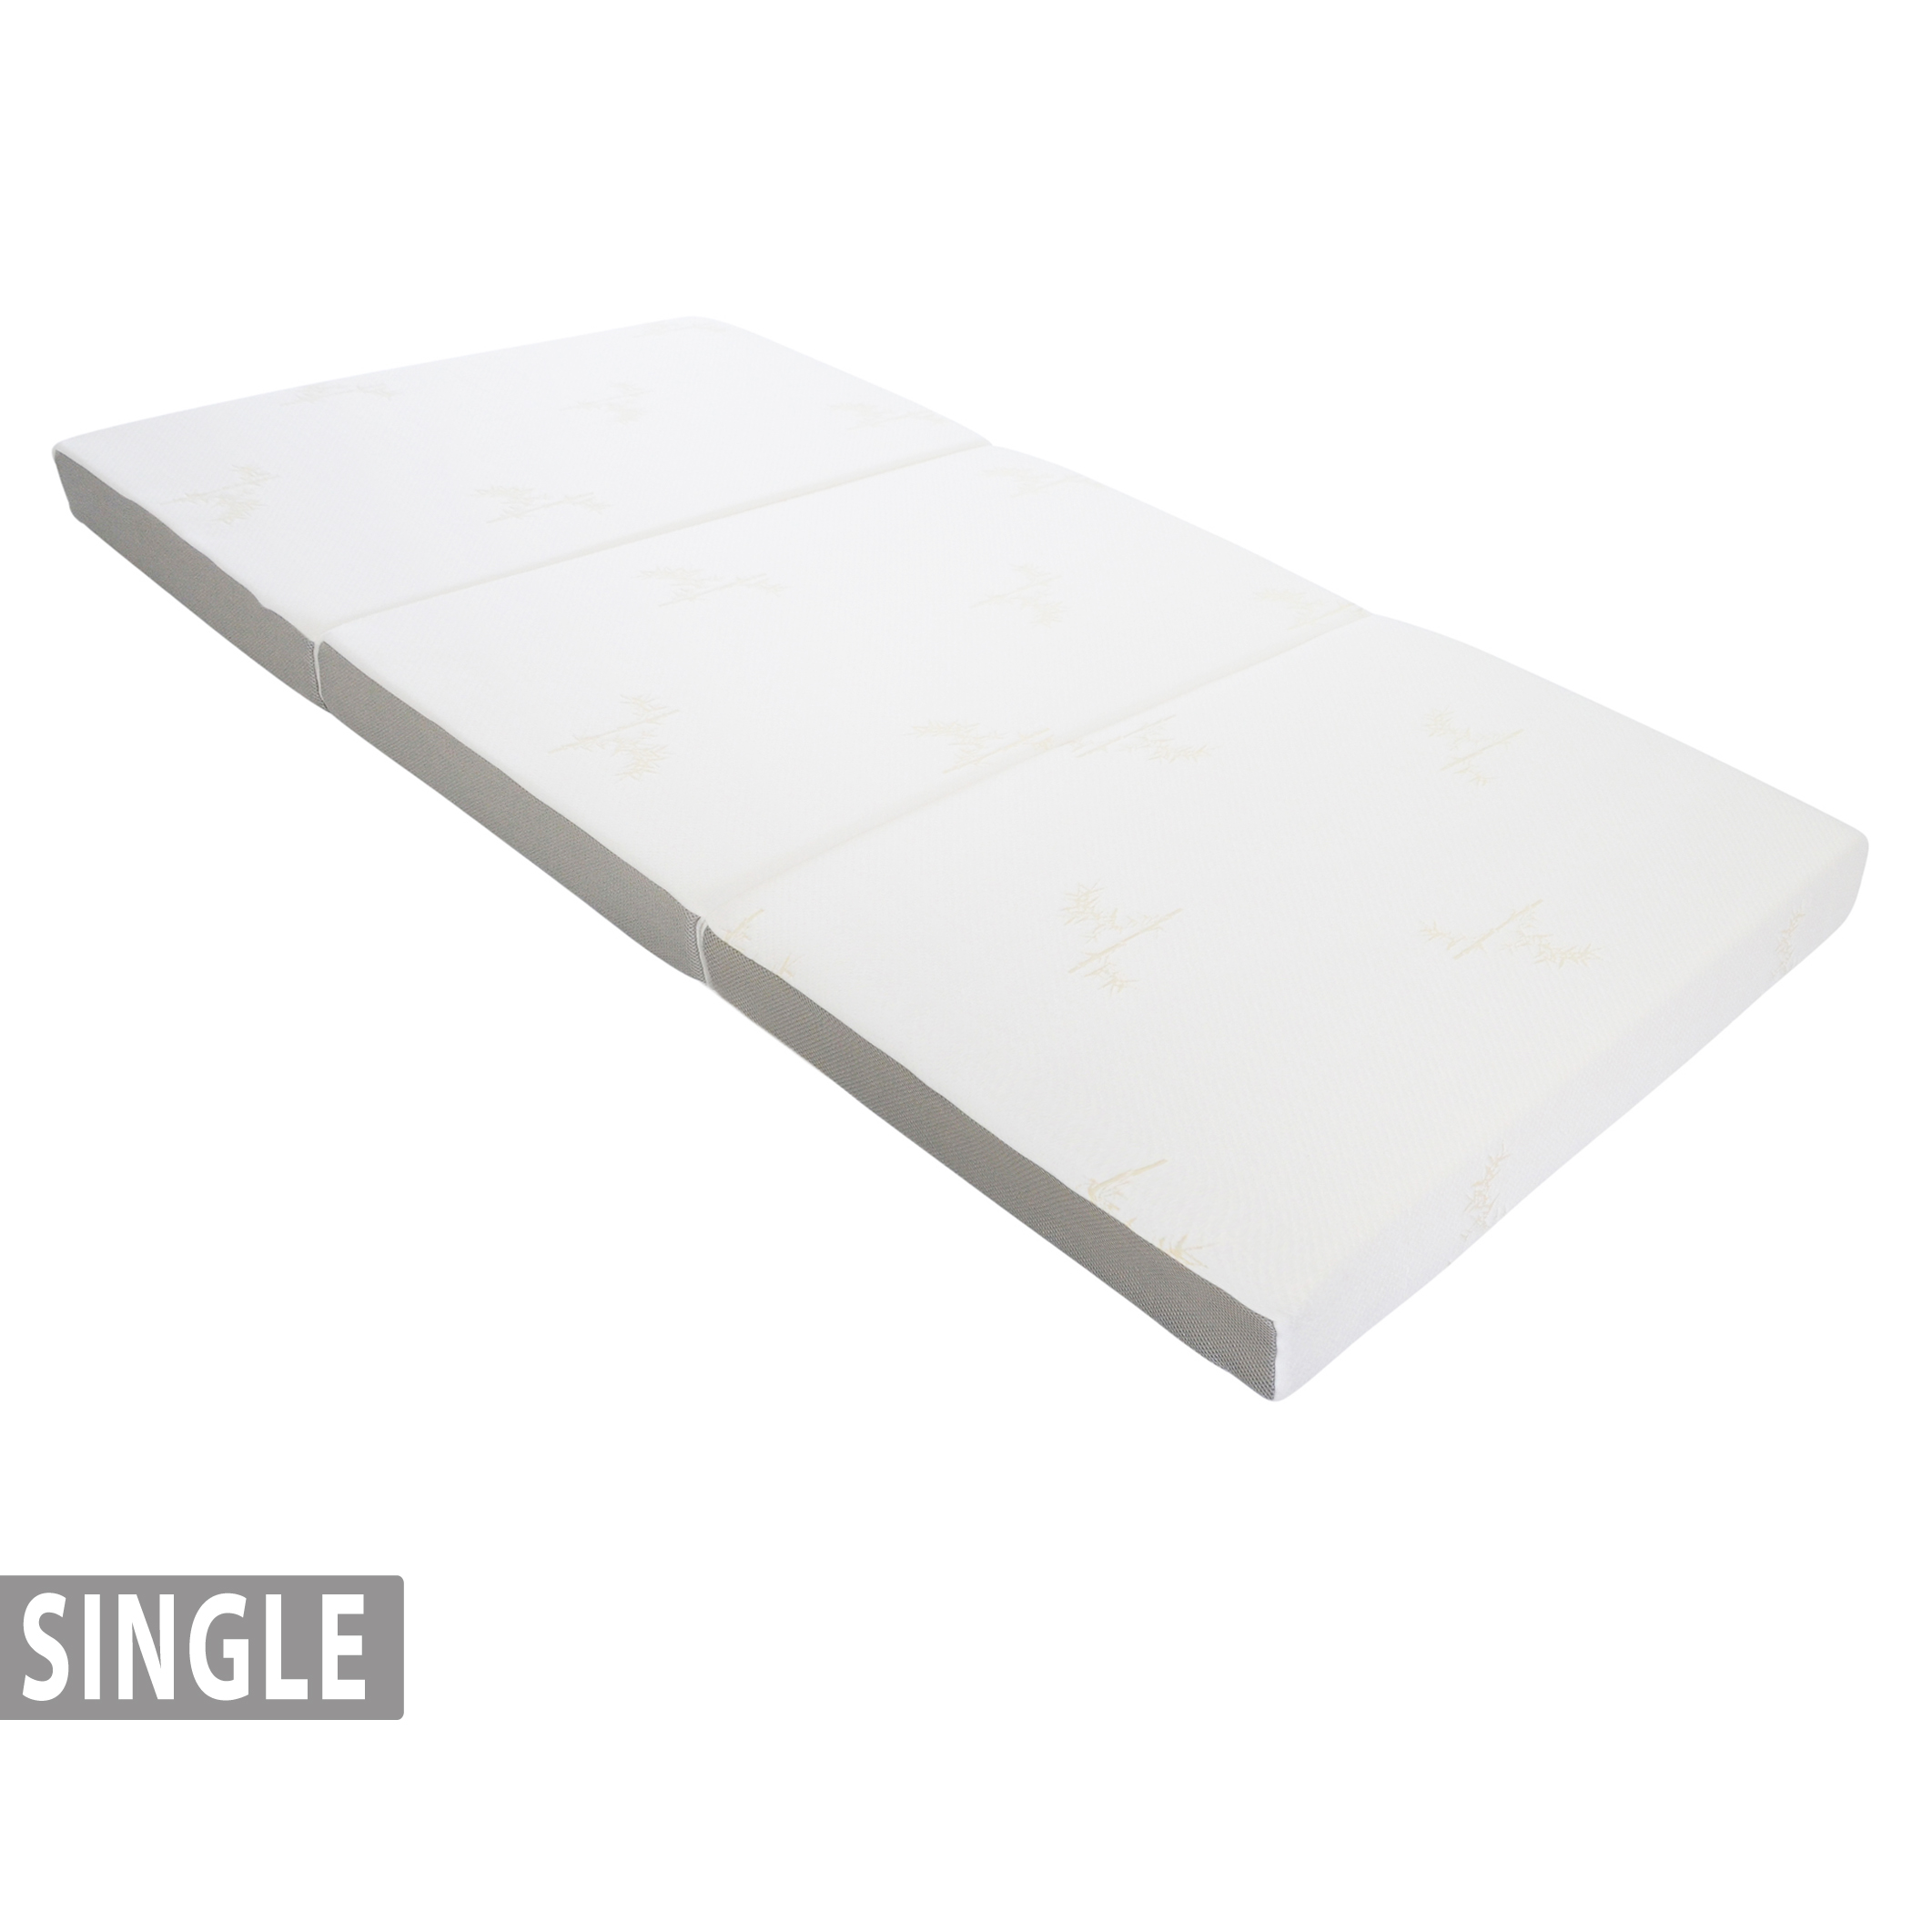 4 Tri Fold Foam Mattress With Cover Single 75 X 25 Milliard Bedding The Ultimate Sleep Experience